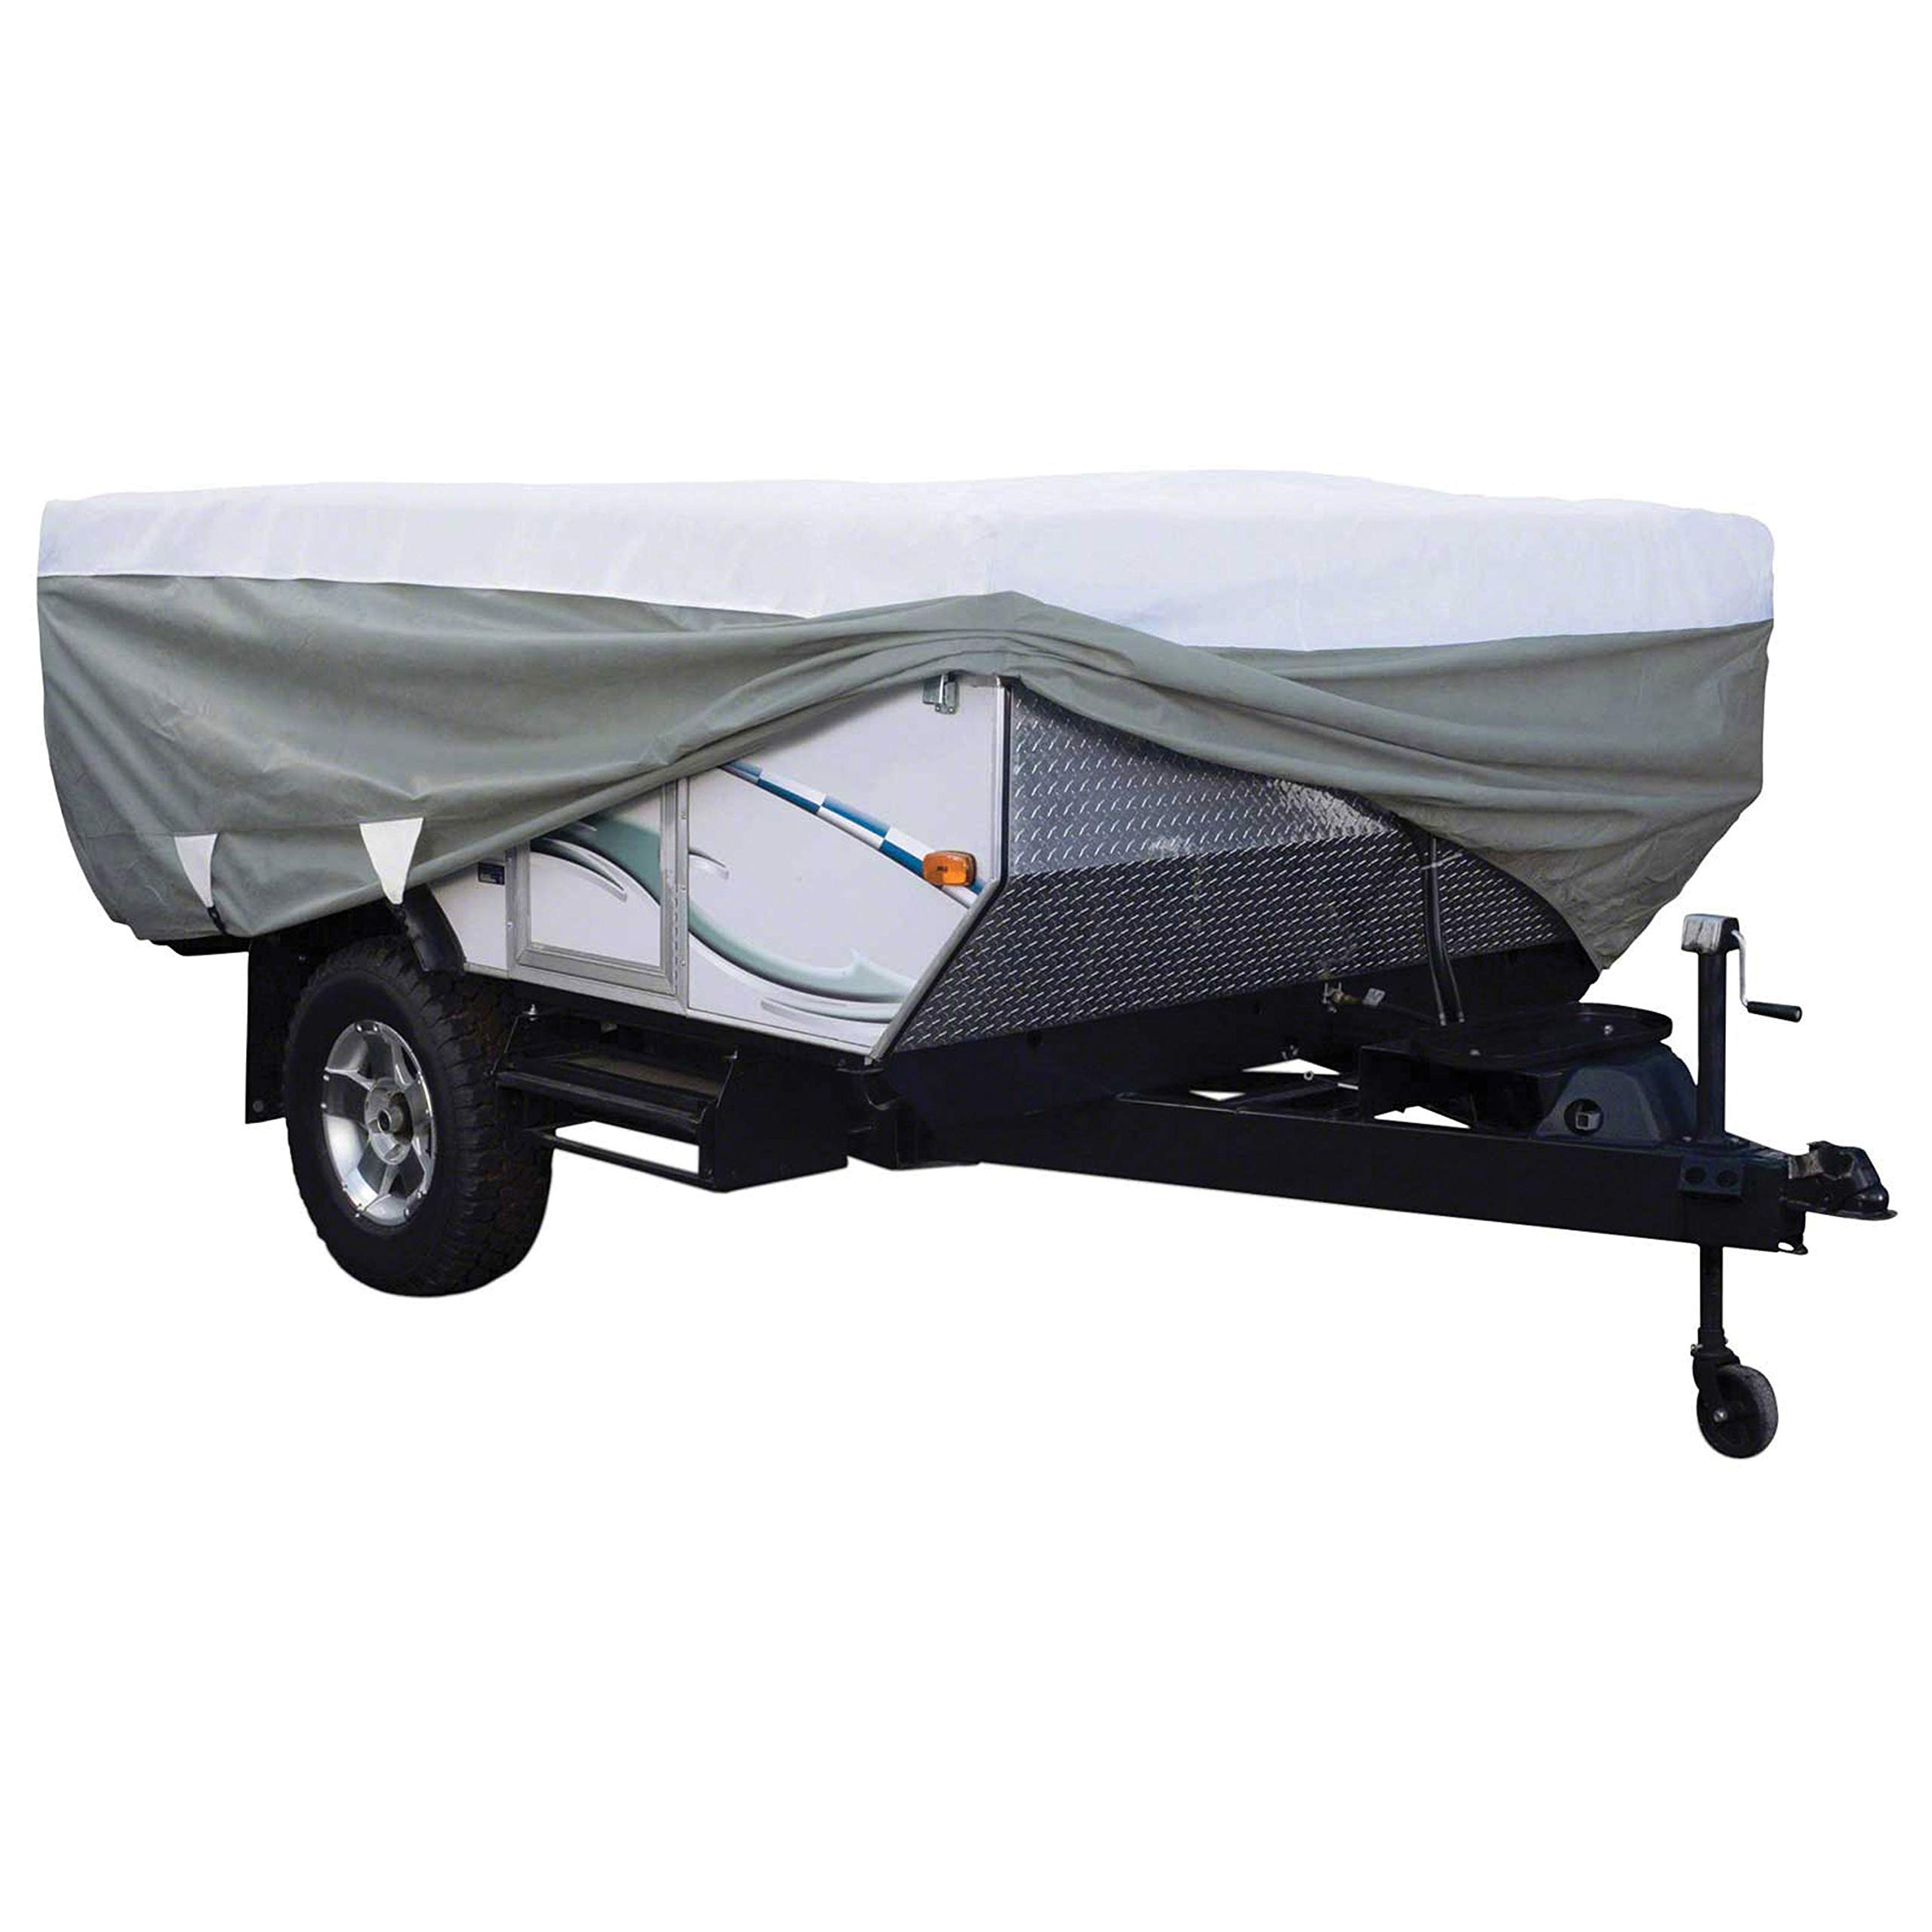 Classic Accessories OverDrive PolyPro 3 Deluxe Folding Camping Trailer Cover, Fits 12' - 14' Trailers